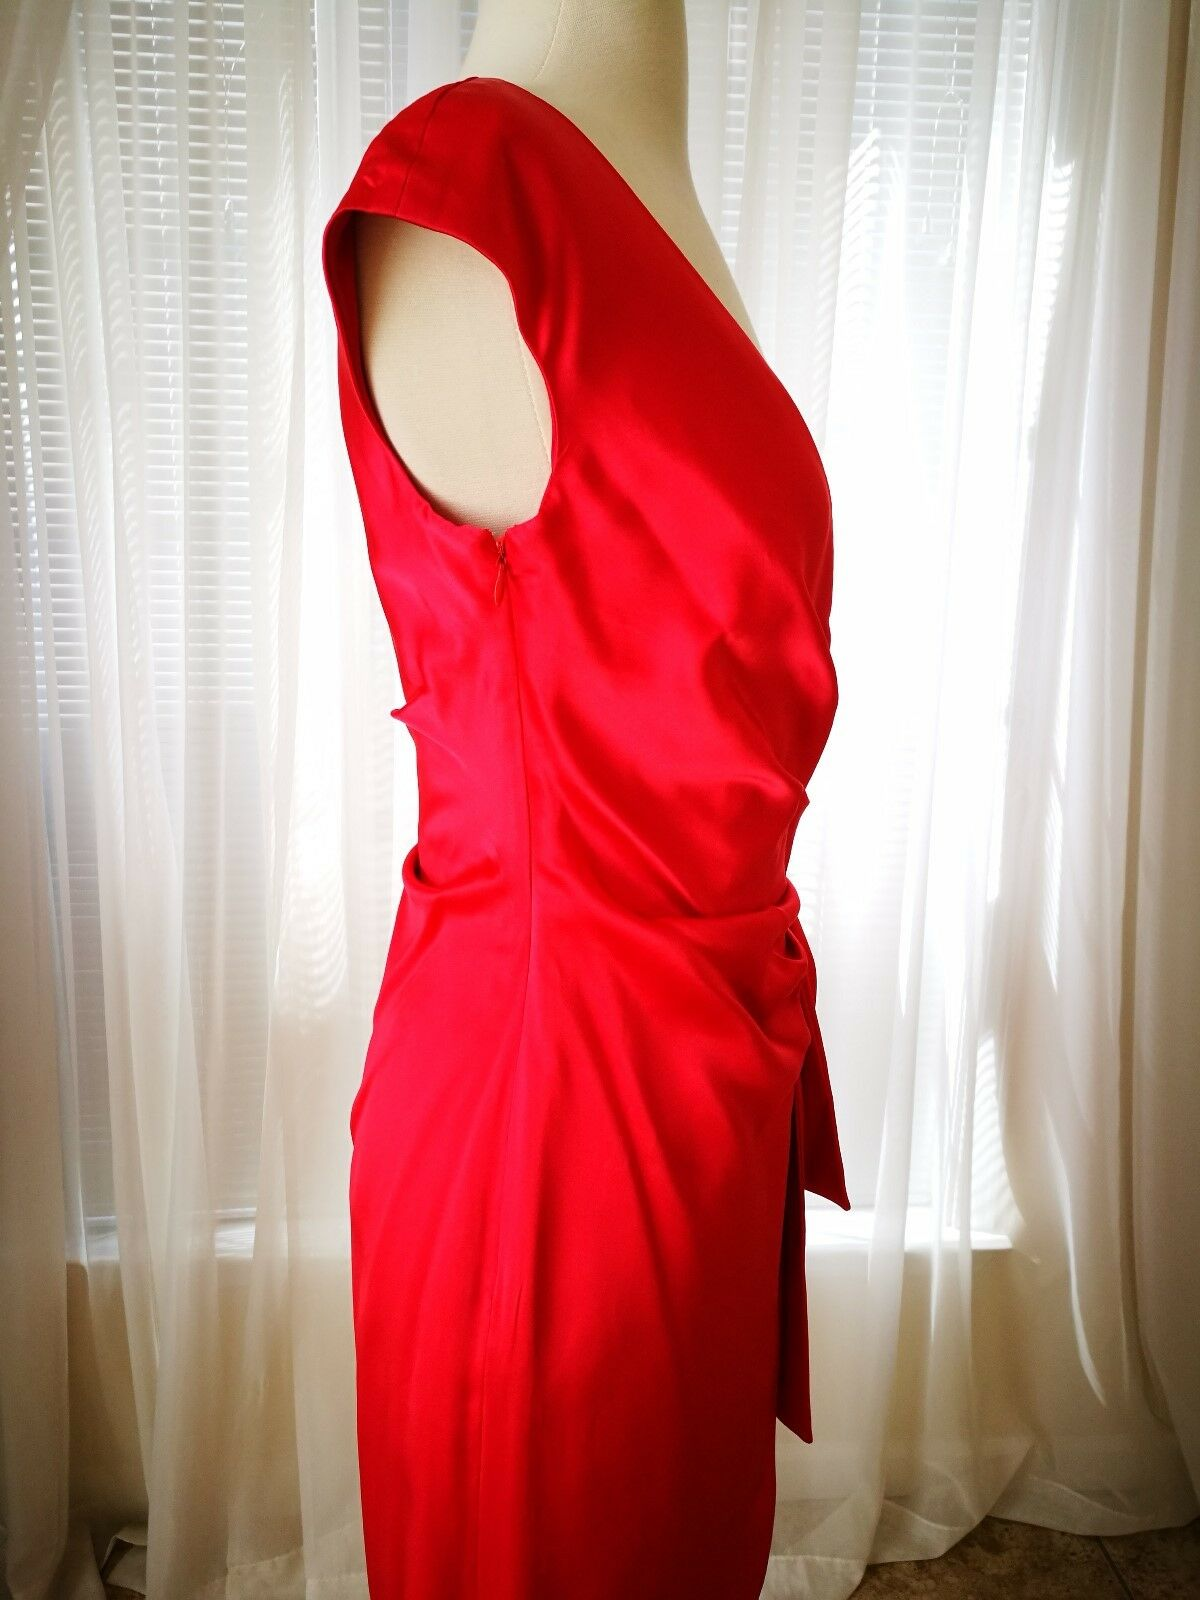 Kay Unger Draped Draped Draped Stretch Satin Side-Tie Gown Dress Formal Sheath Red Sz 2 0660c9